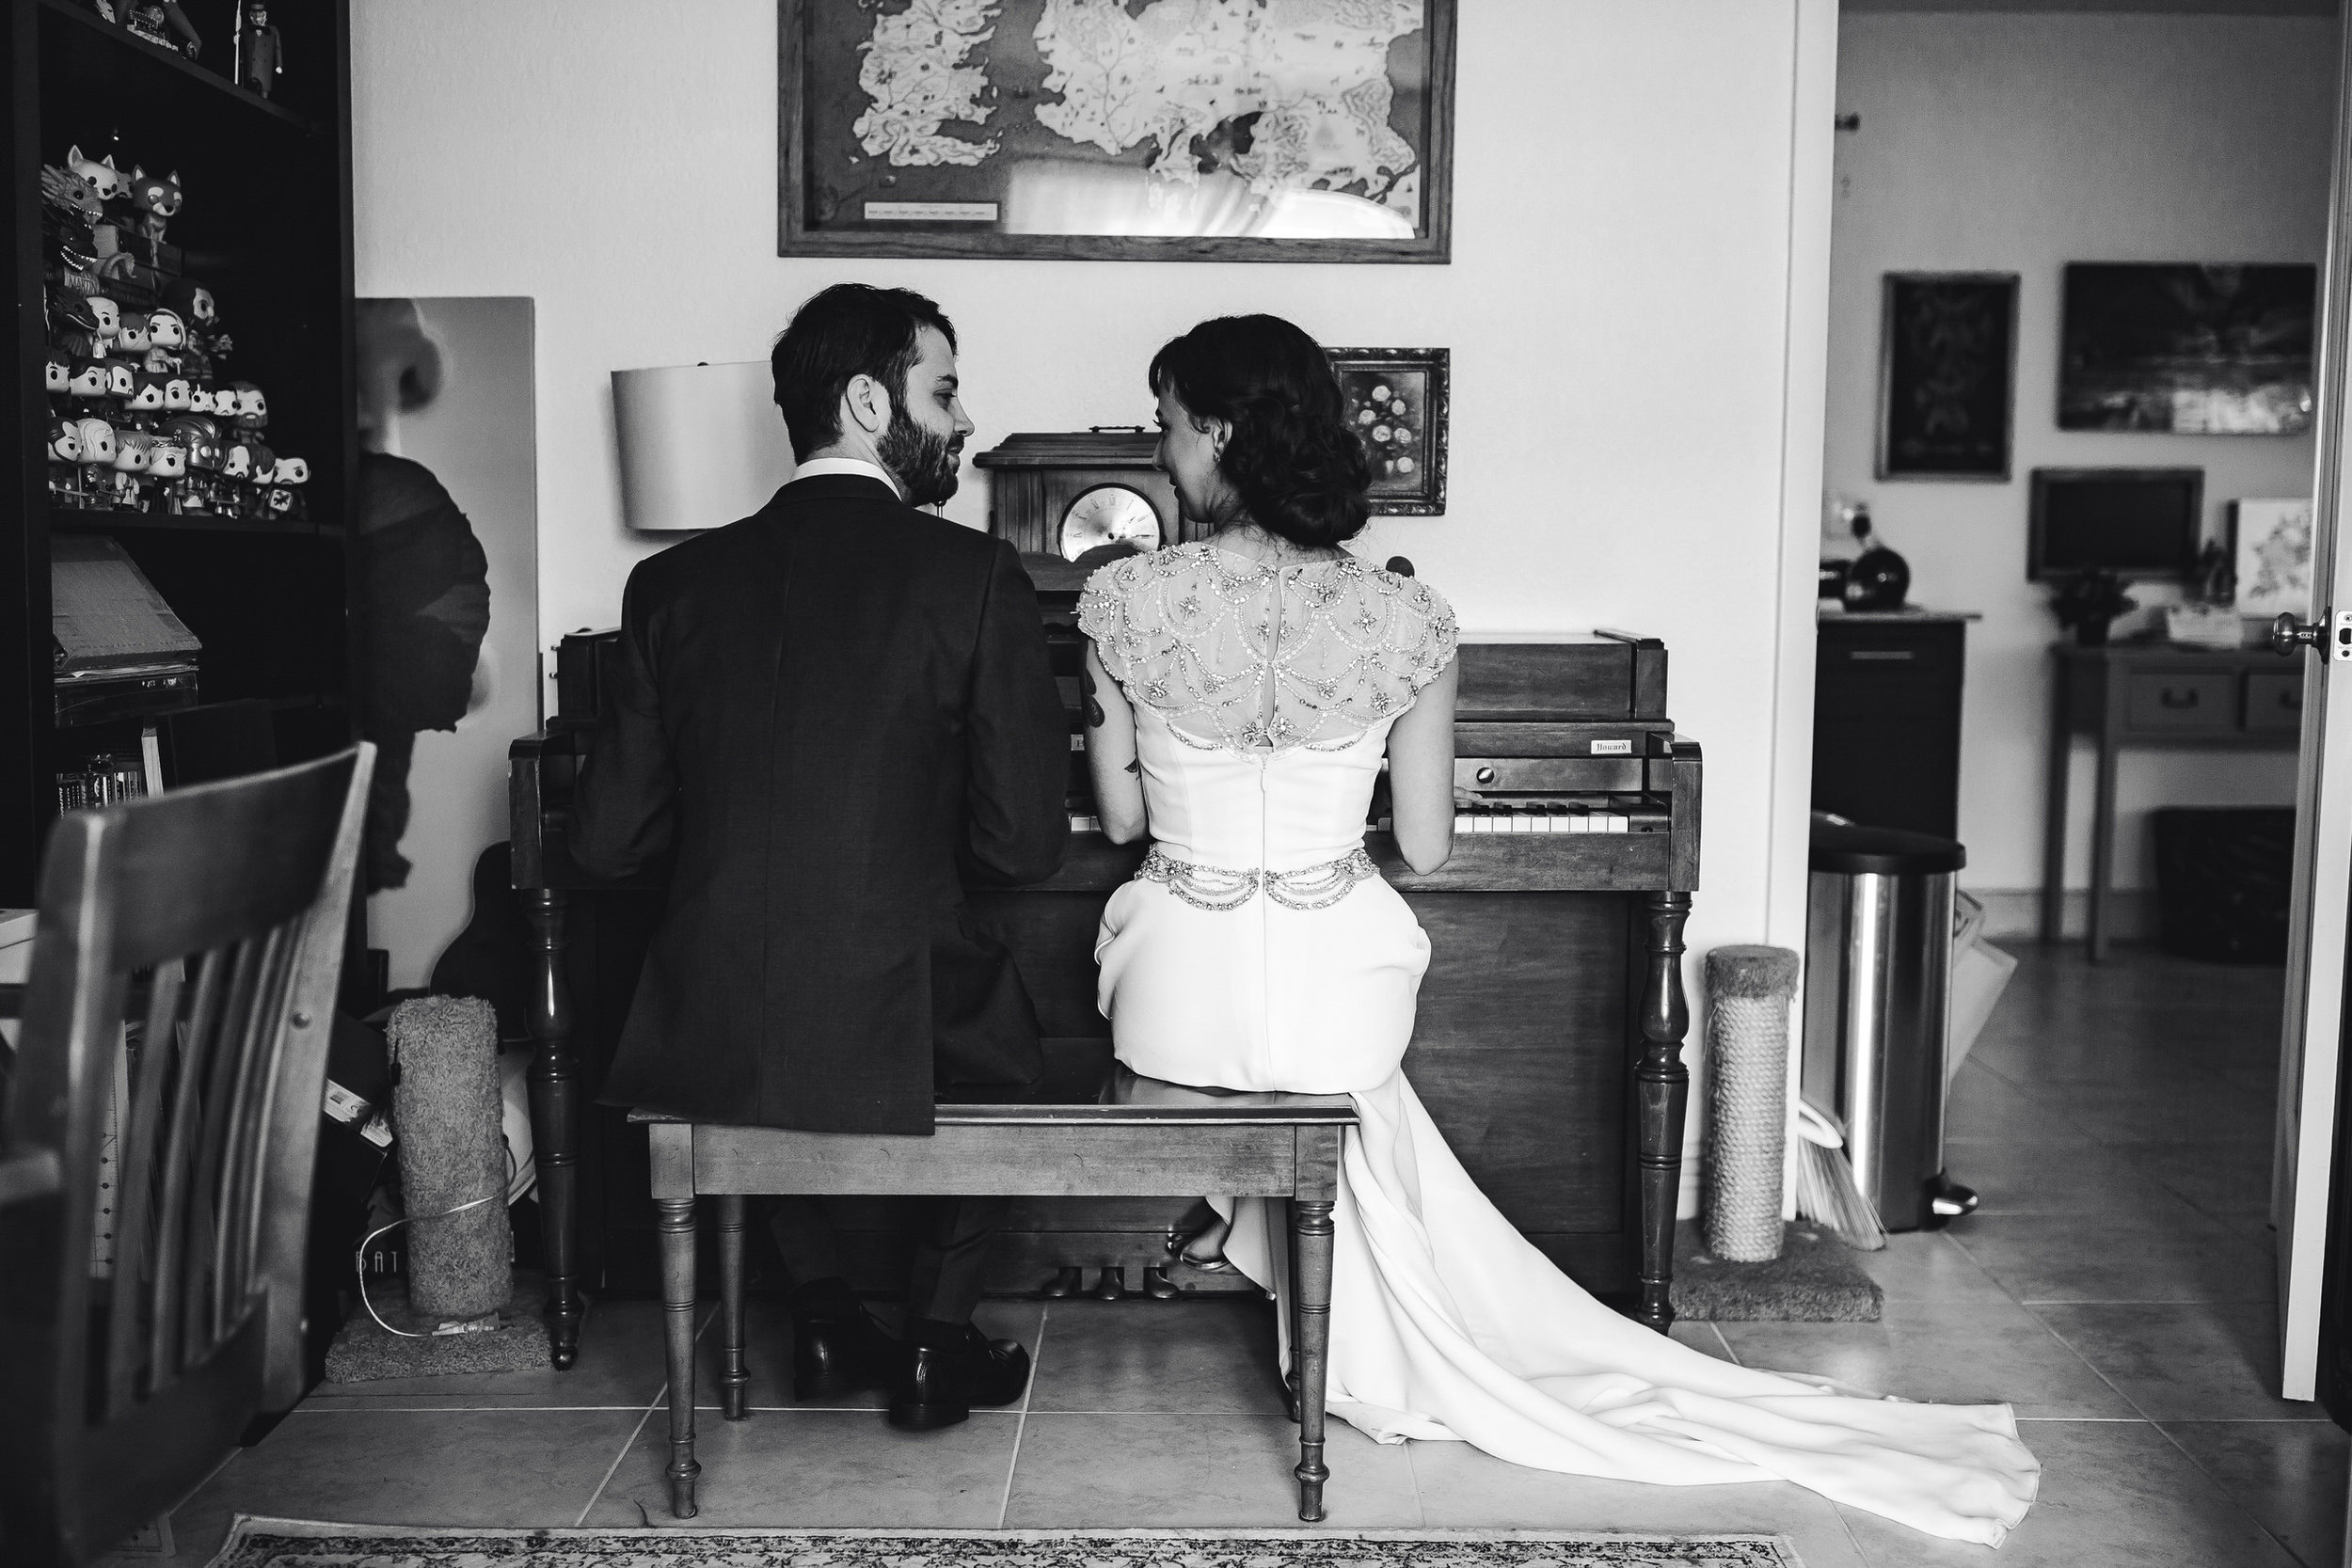 bride_and_groom_in_home_session_wedding_fort_lauderdale_photographer_steph_lynn_photo-6.jpg